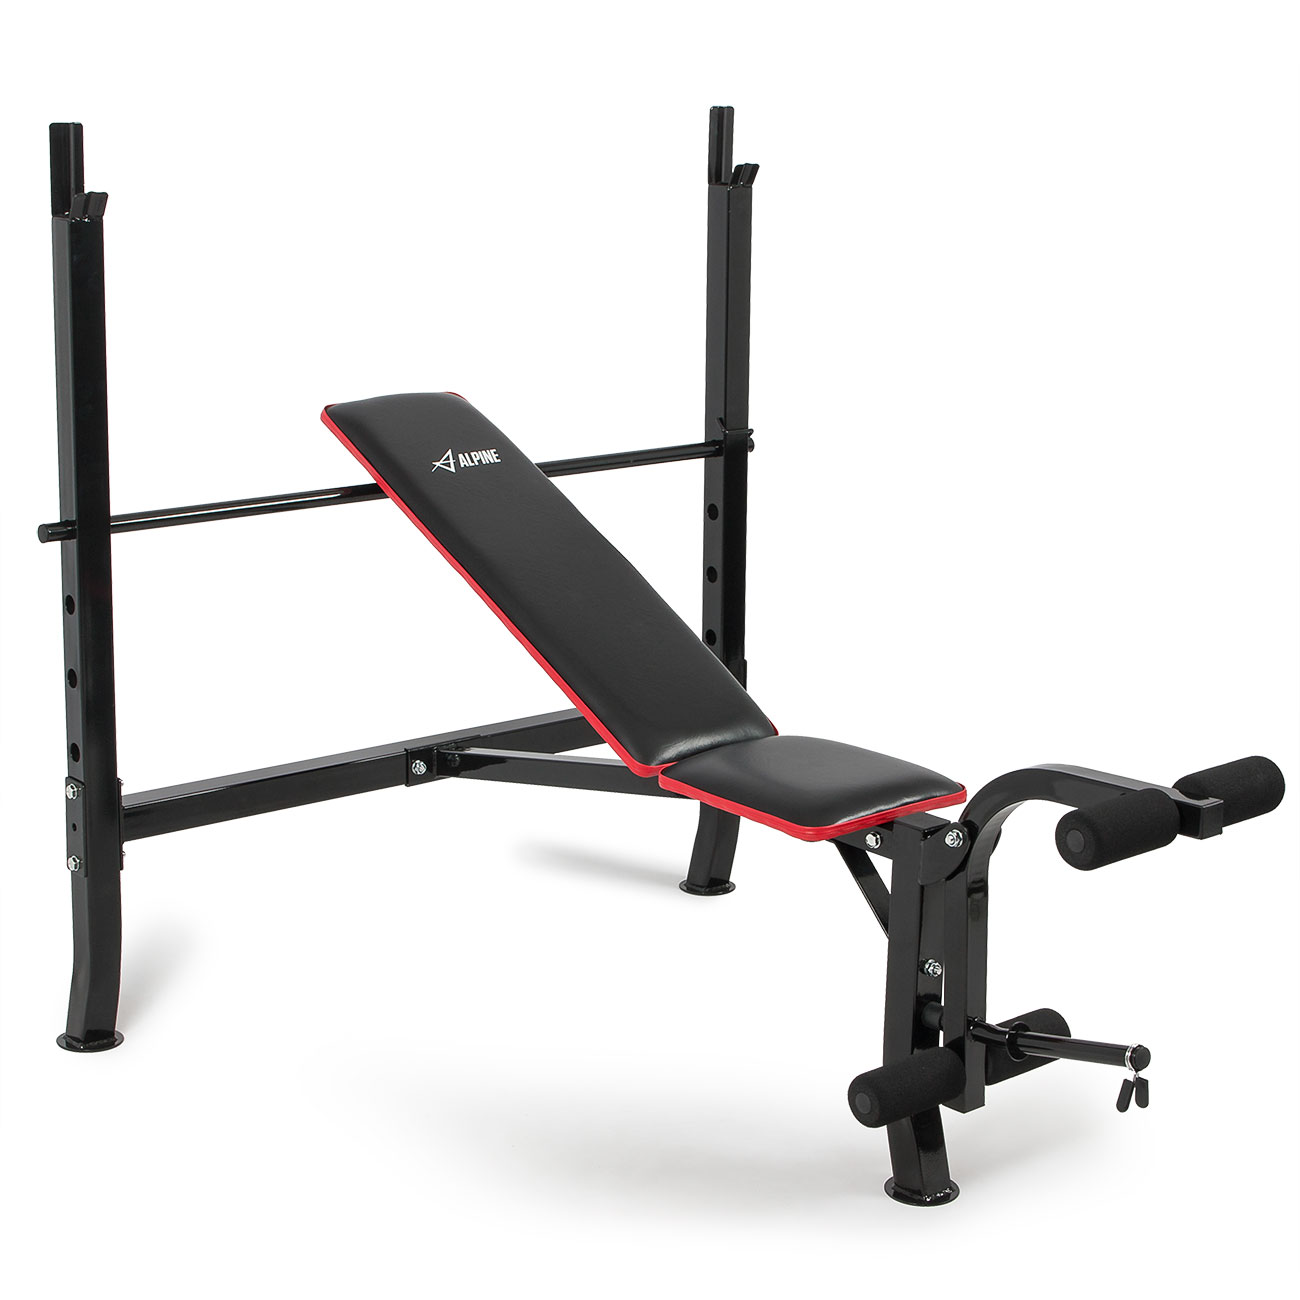 Akonza Weight Lifting Bench Fitness Body Workout Home